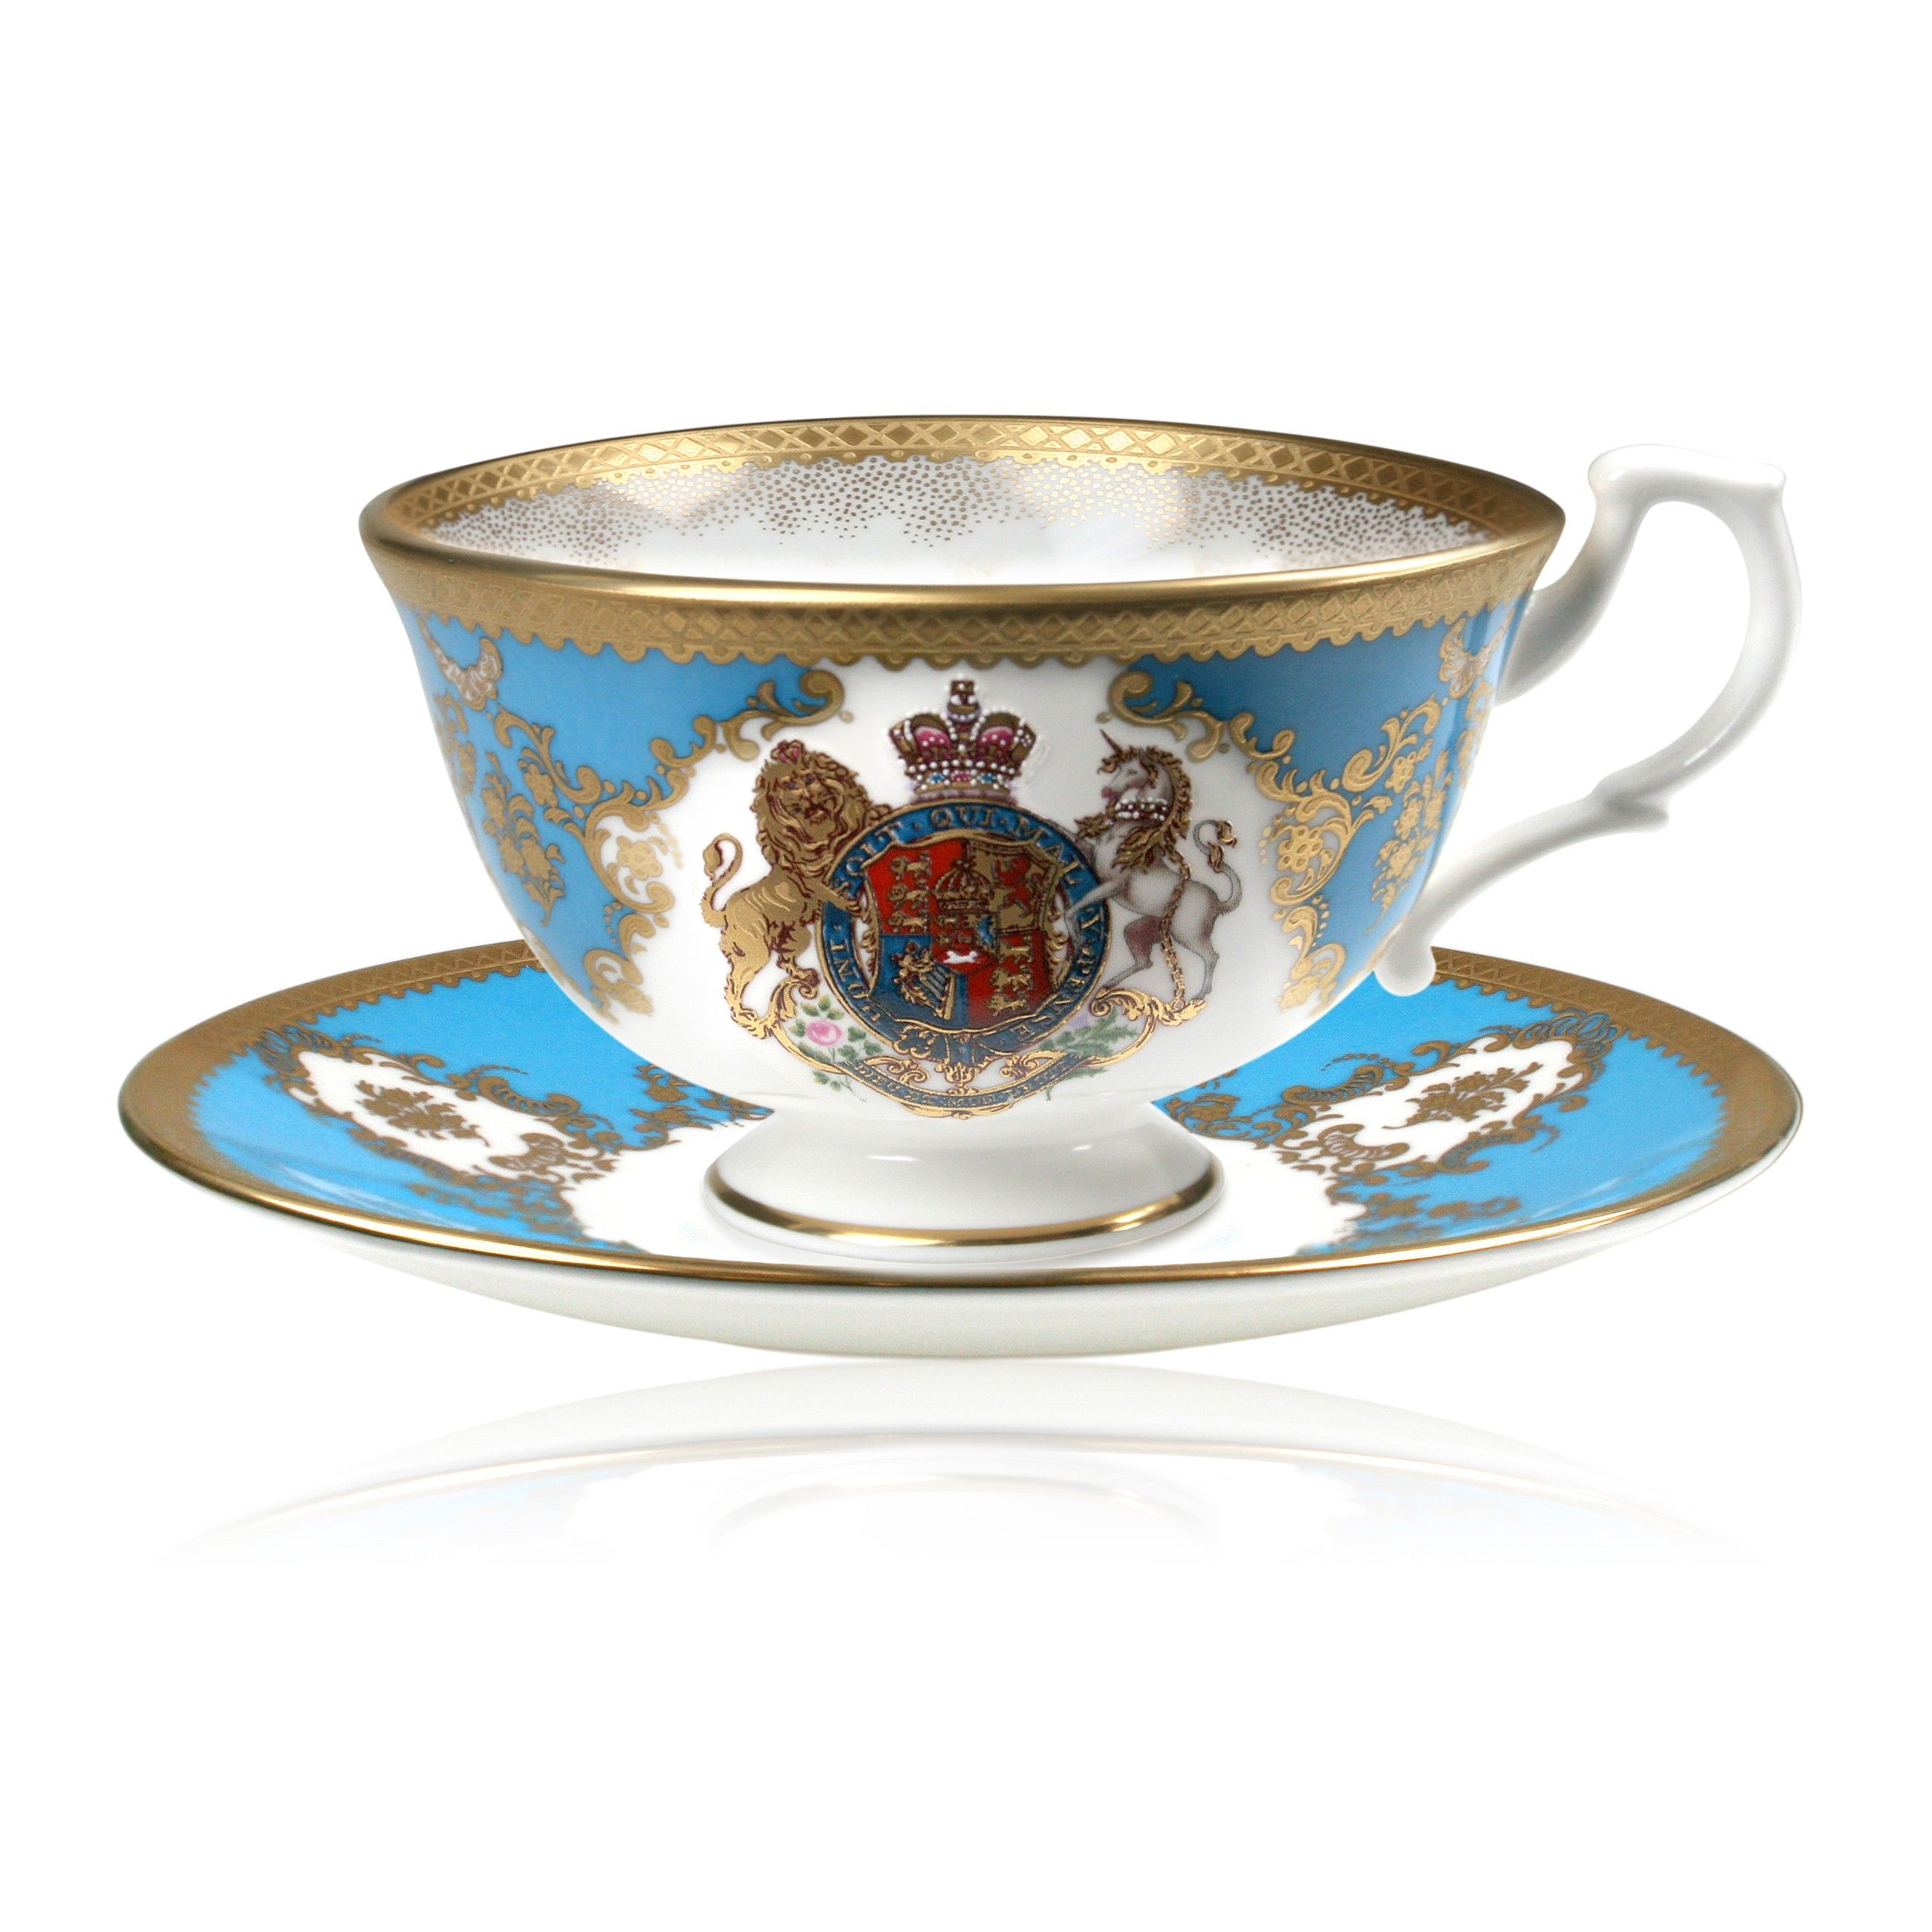 Coat of Arms Teacup \u0026 Saucer - Coat of Arms Collection - Chinaware ...